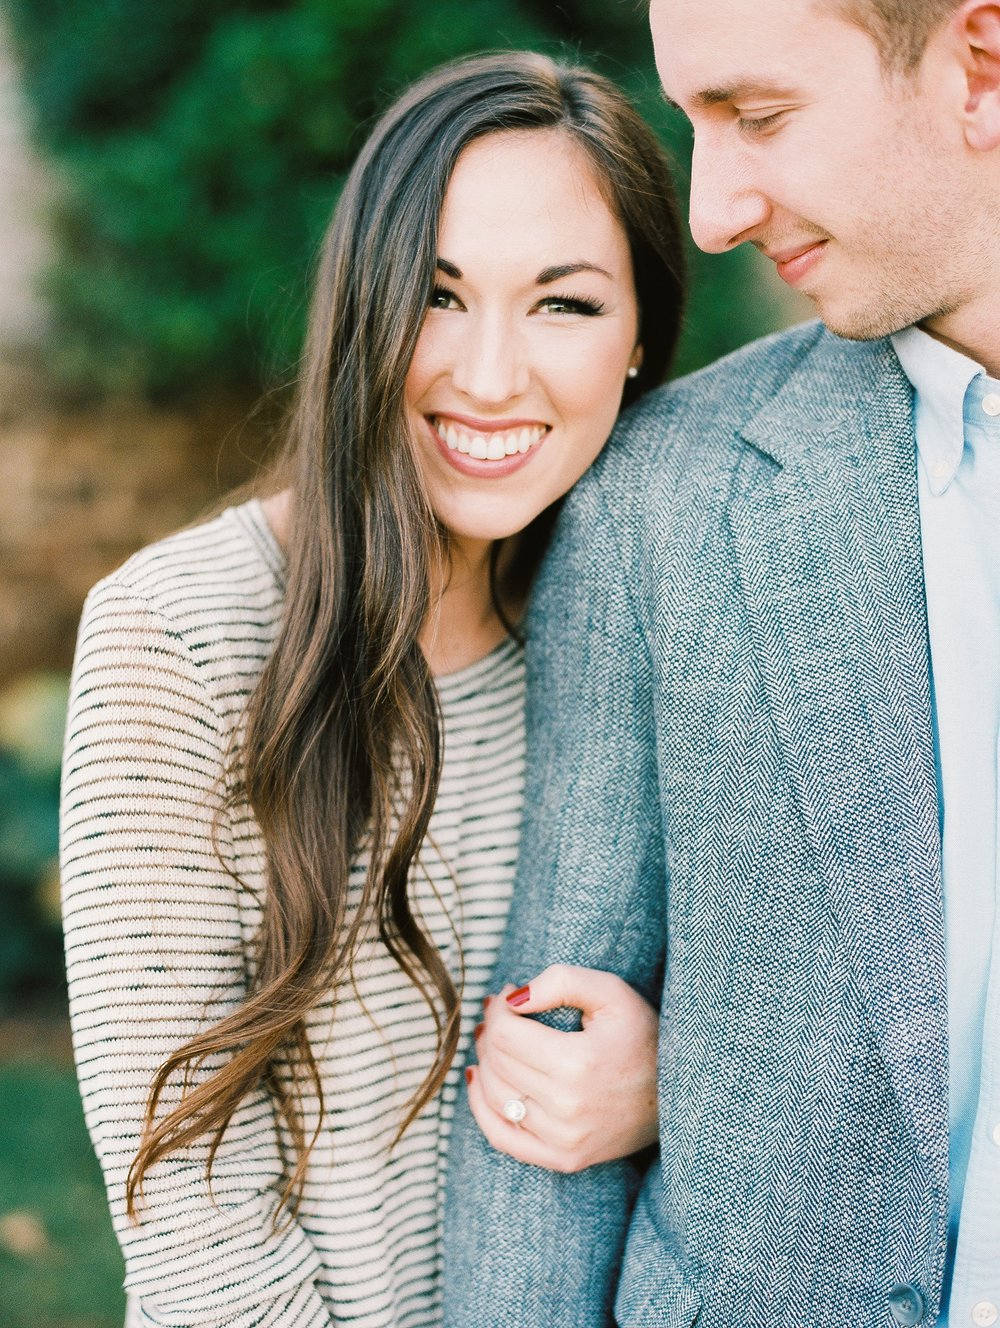 Northwest Arkansas Wedding Engagement Photographer_0150.jpg